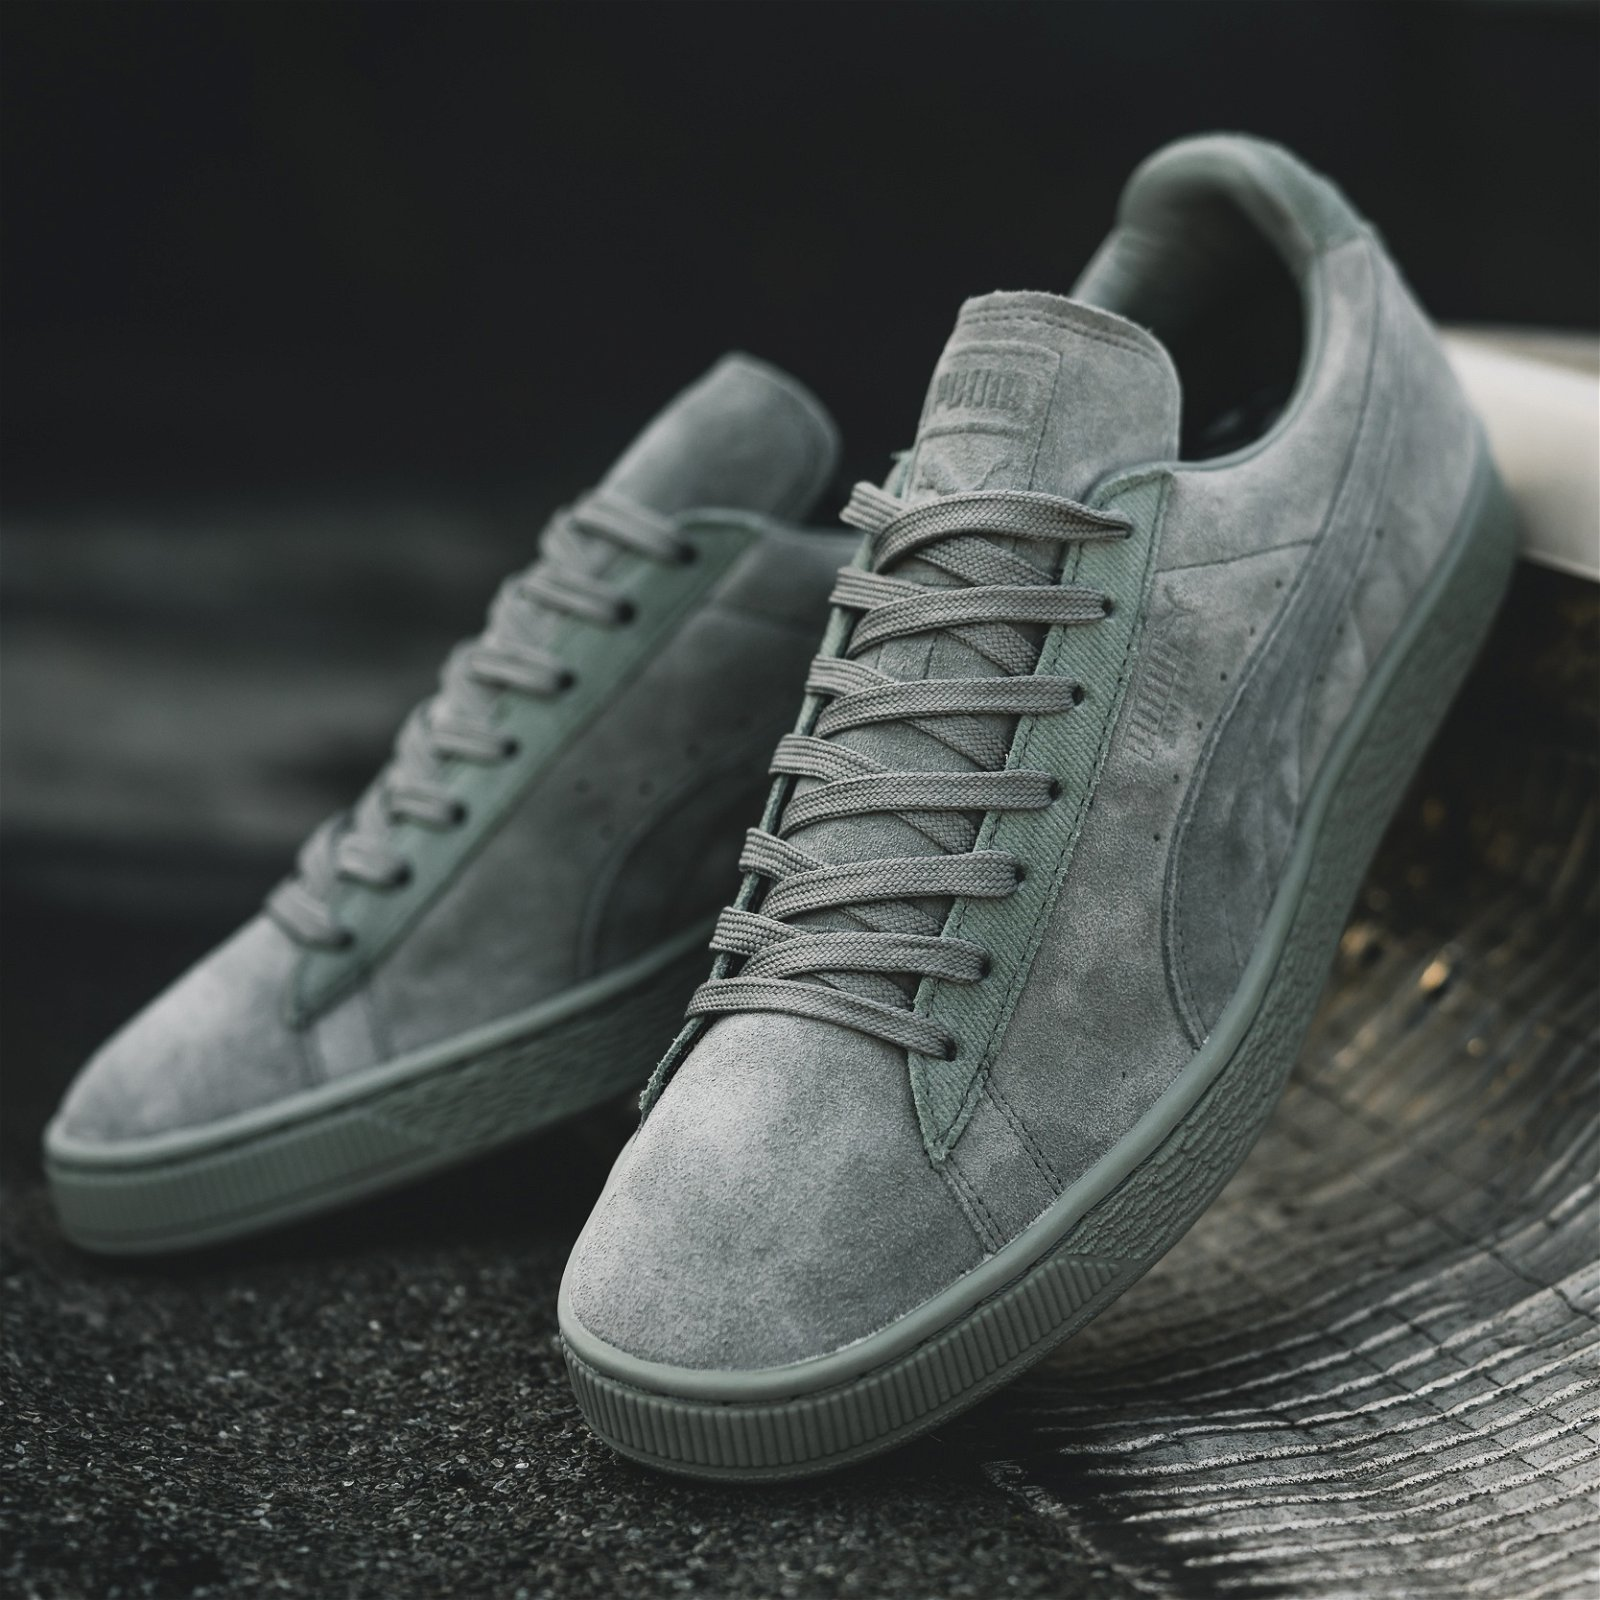 newest collection fc180 6b614 Snipes.Com: New In: VANS Old Skool | Puma Suede Tonal Pack ...